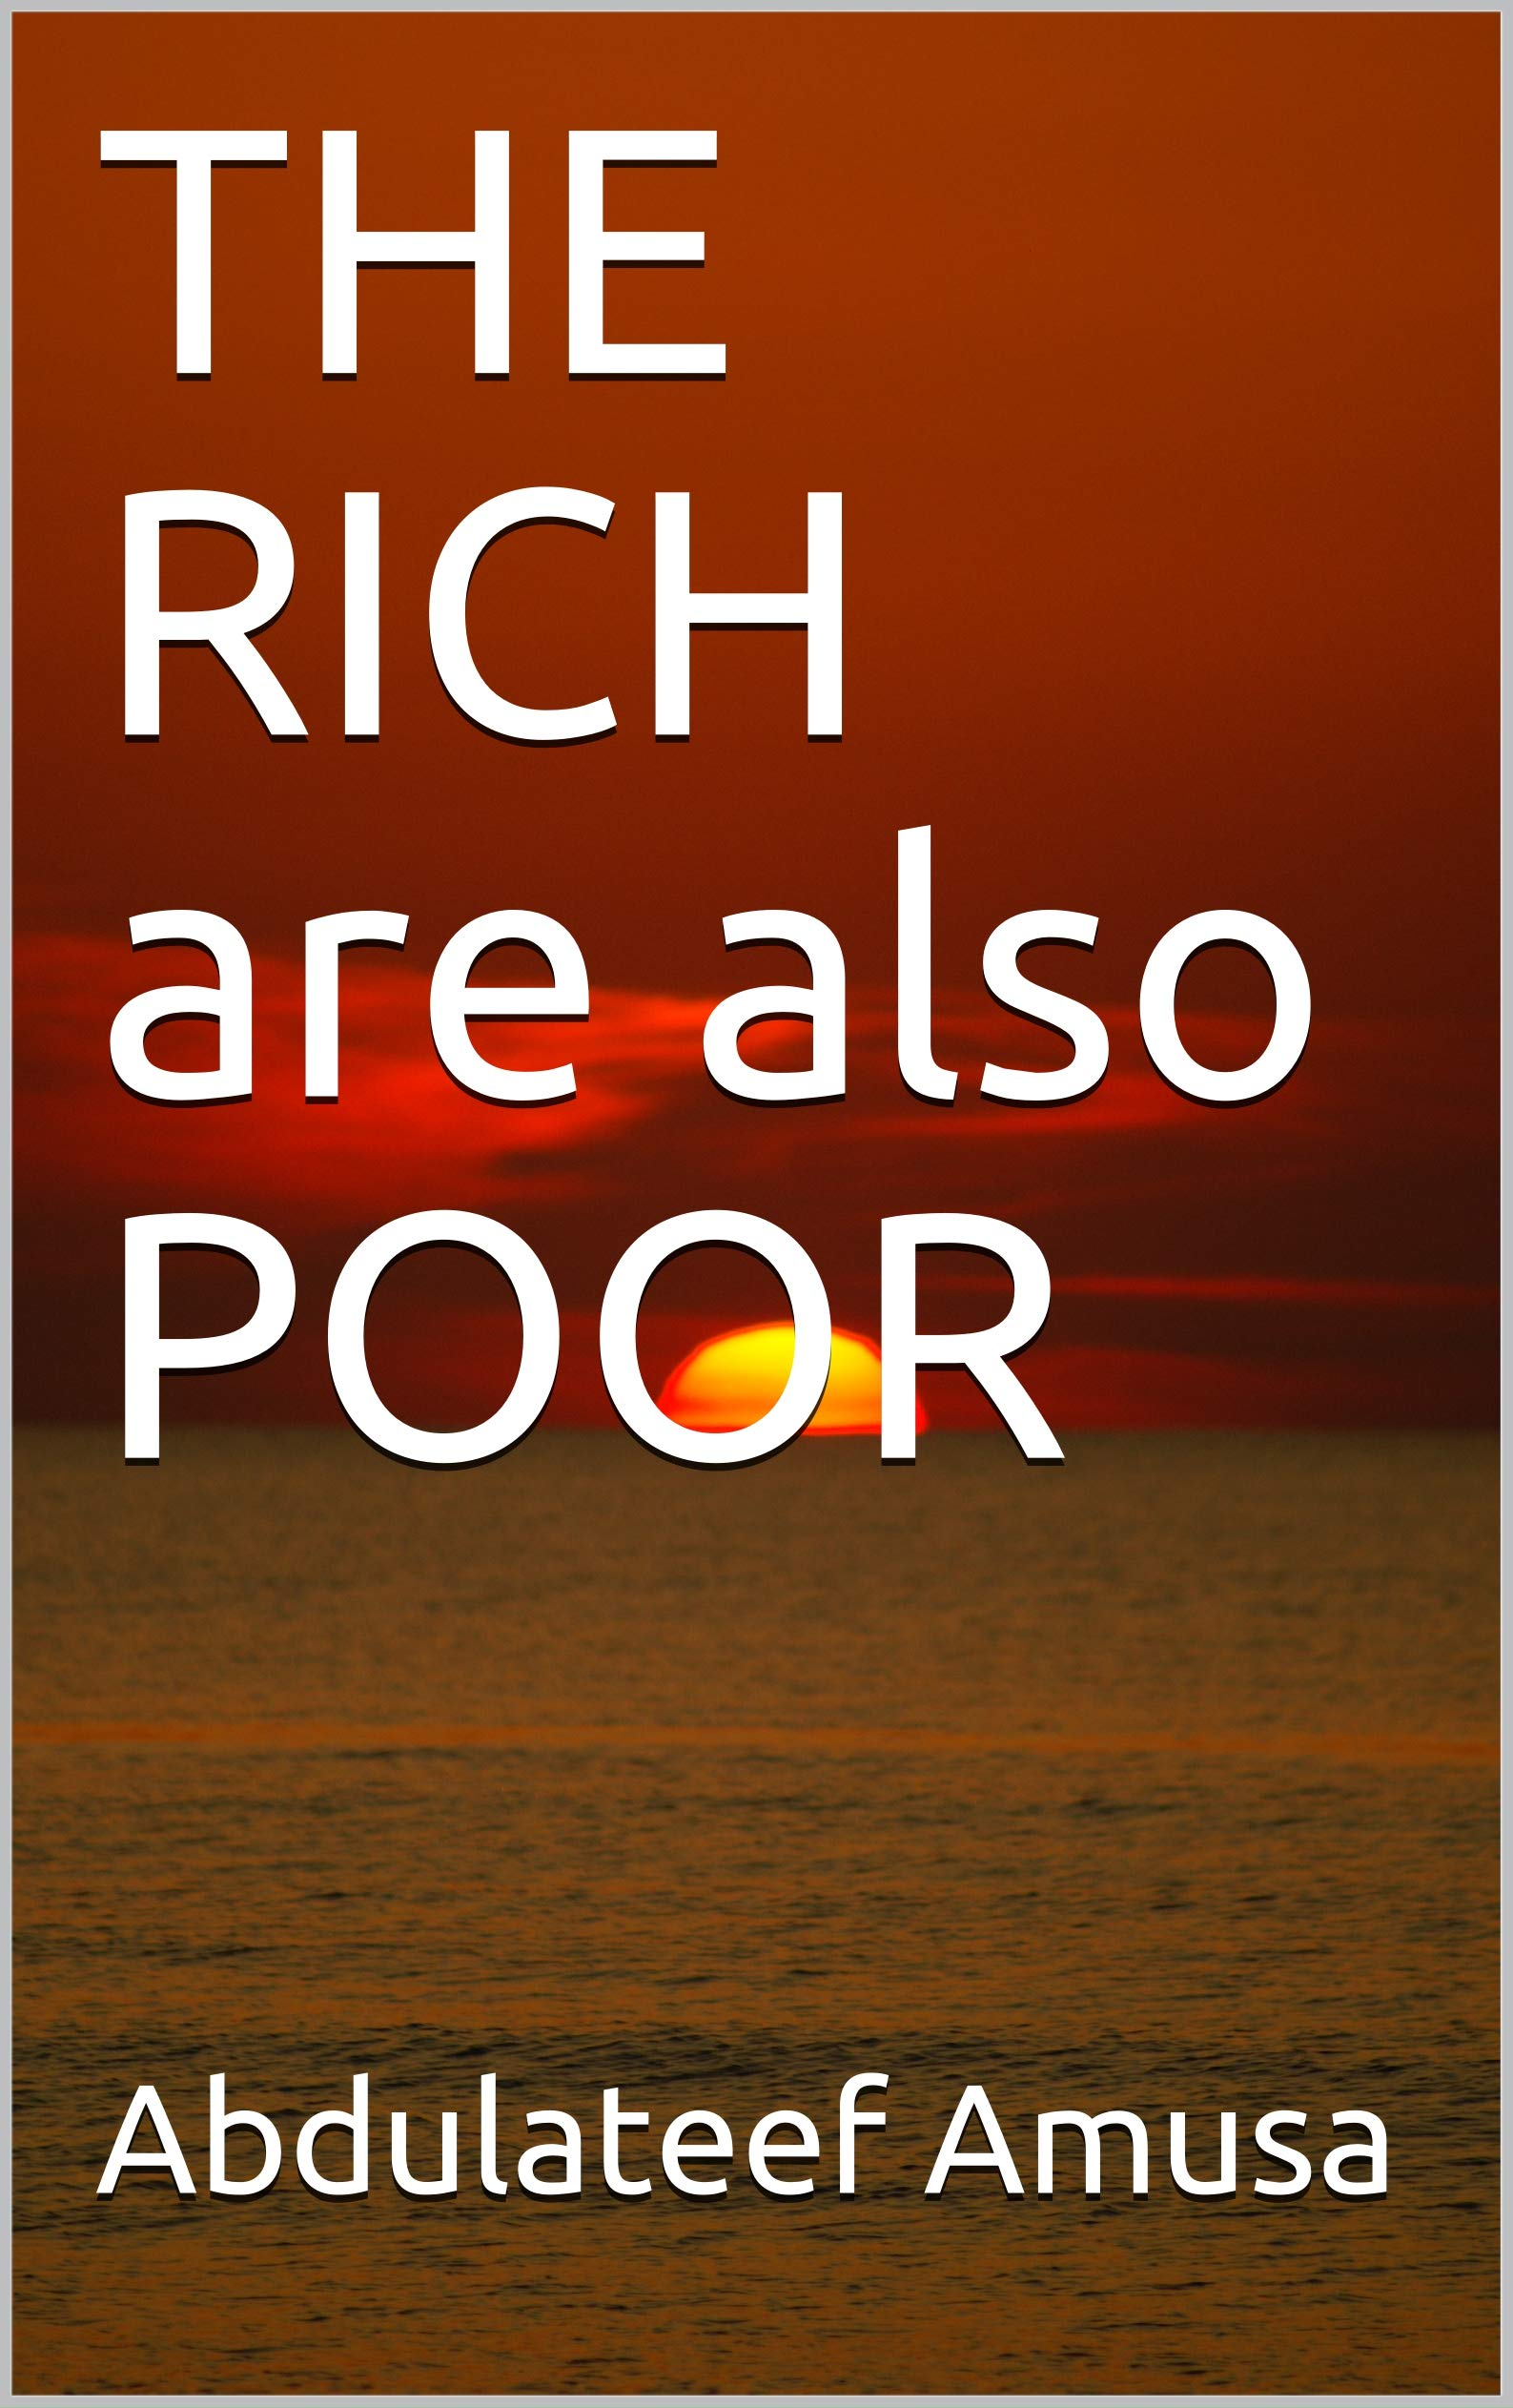 THE RICH are also POOR